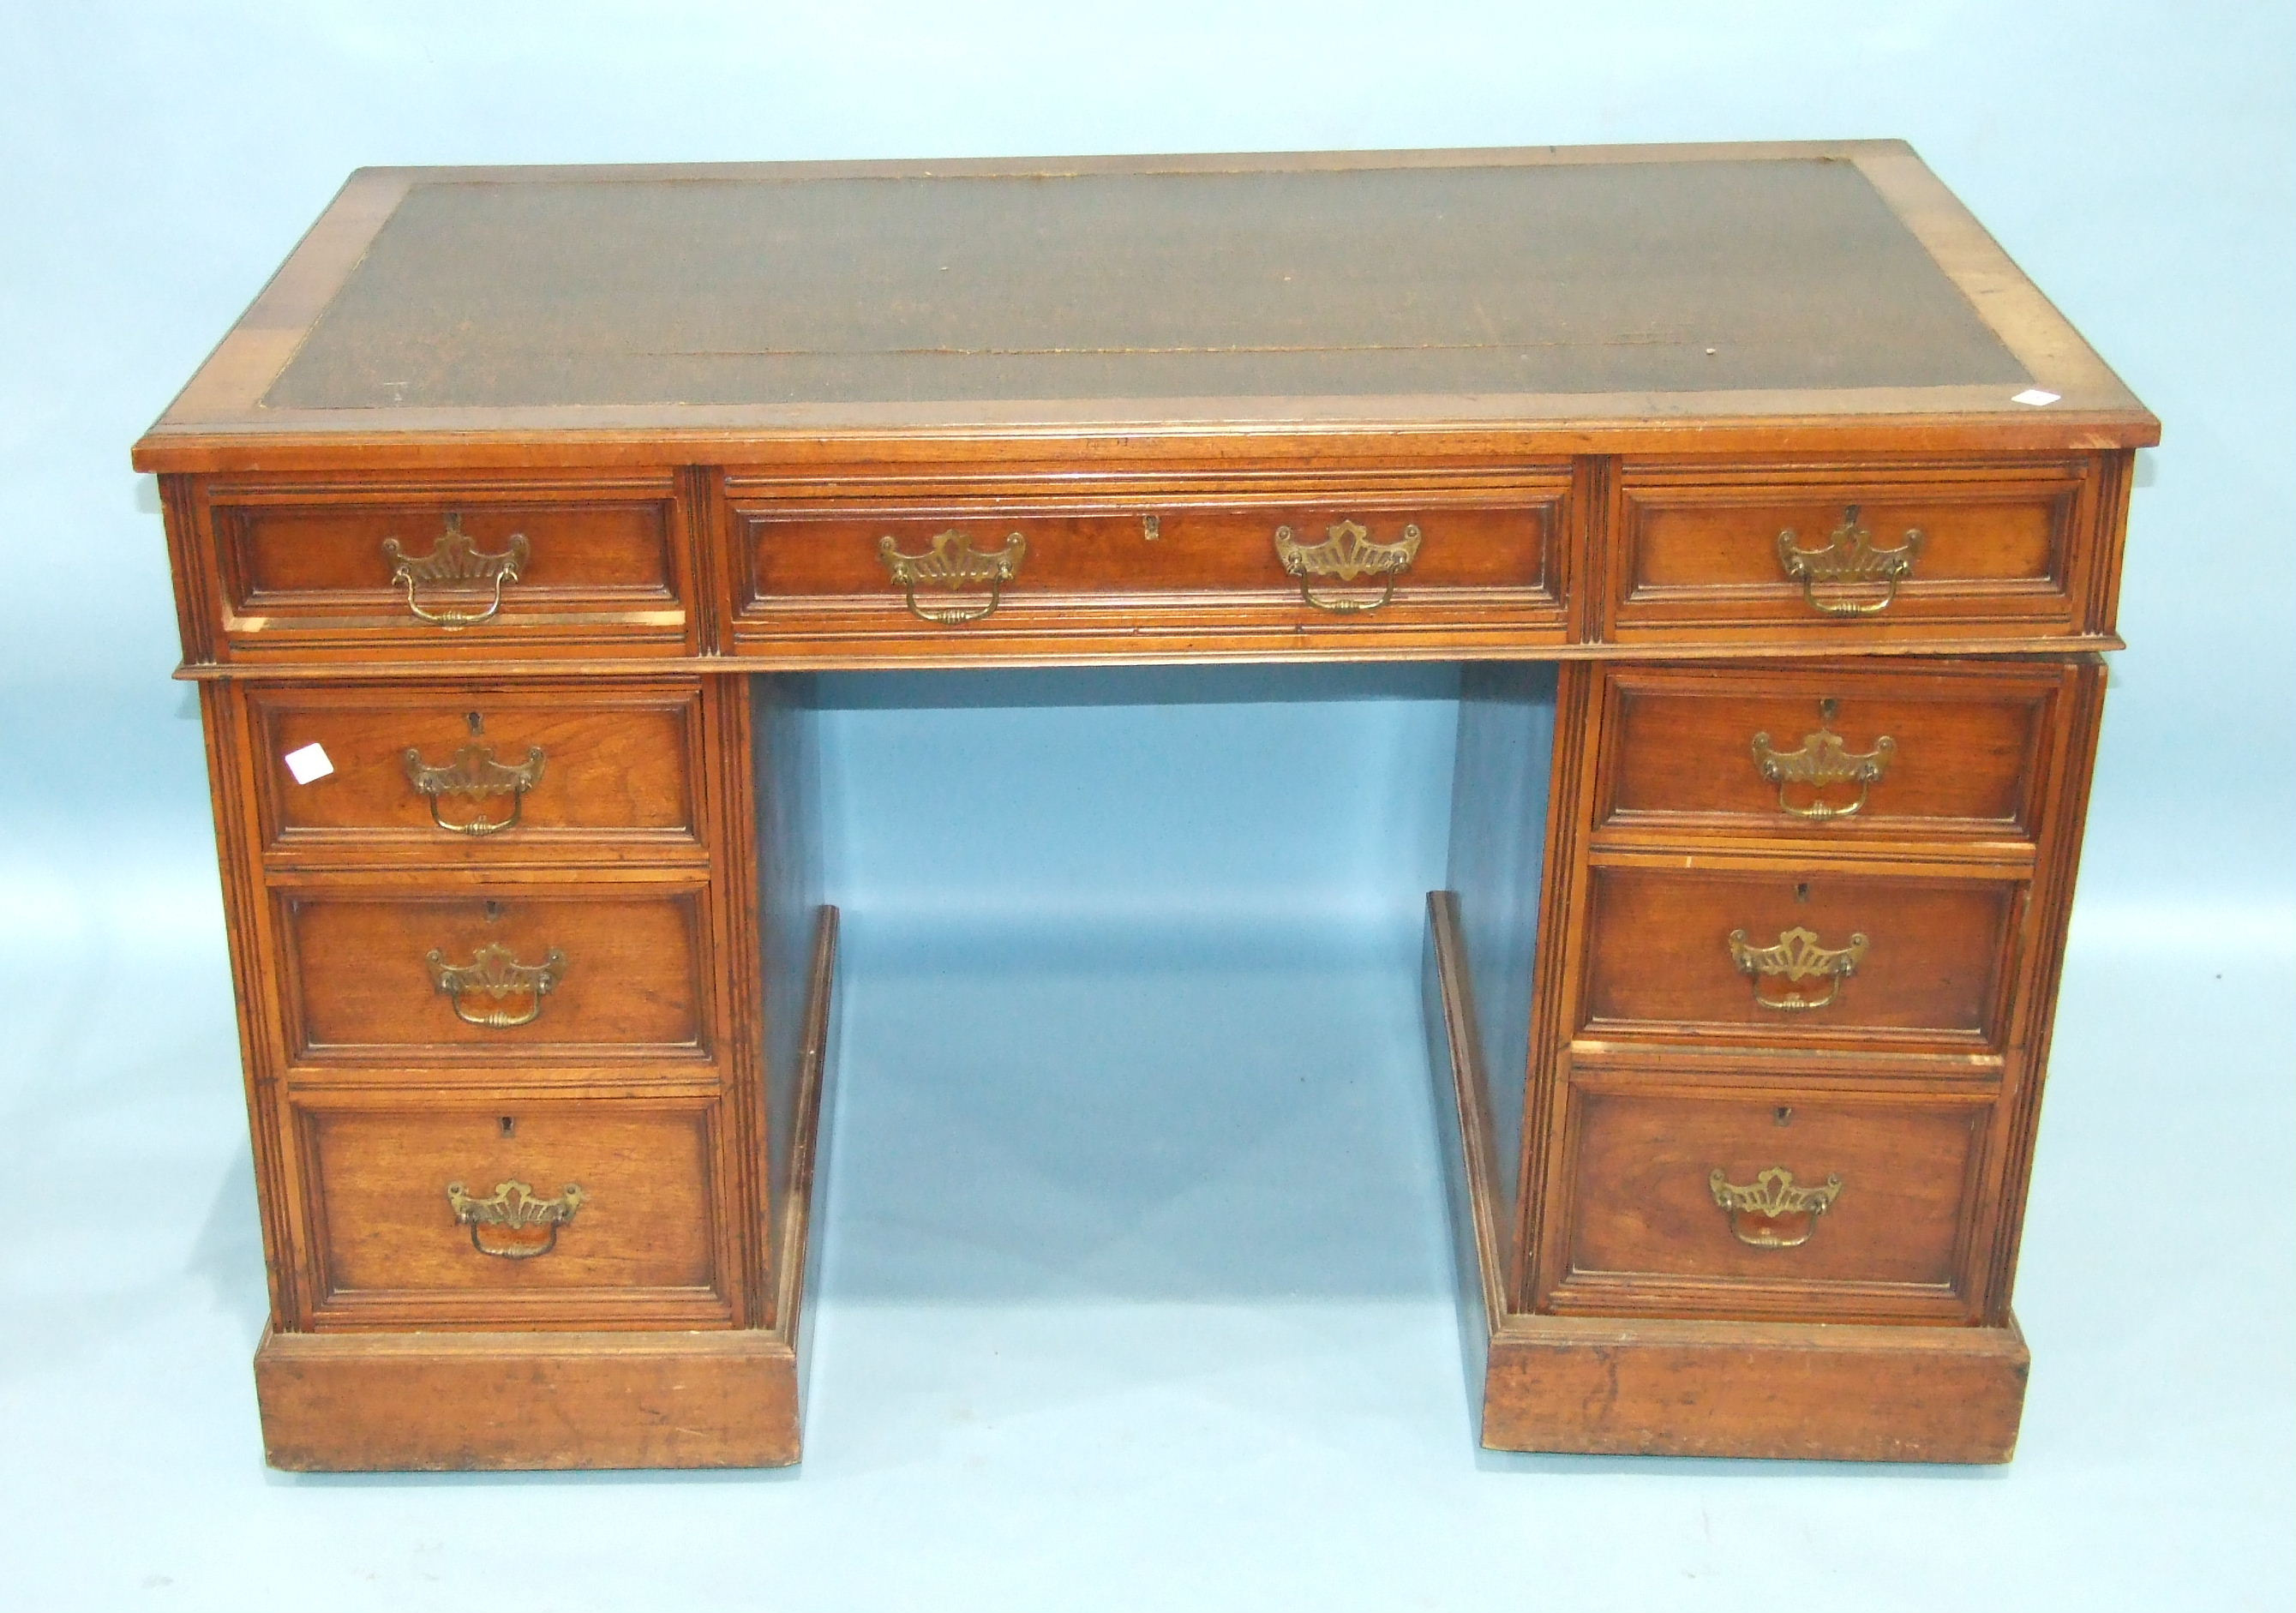 Lot 96 - A late-Victorian walnut kneehole writing desk, the rectangular top with inset writing surface